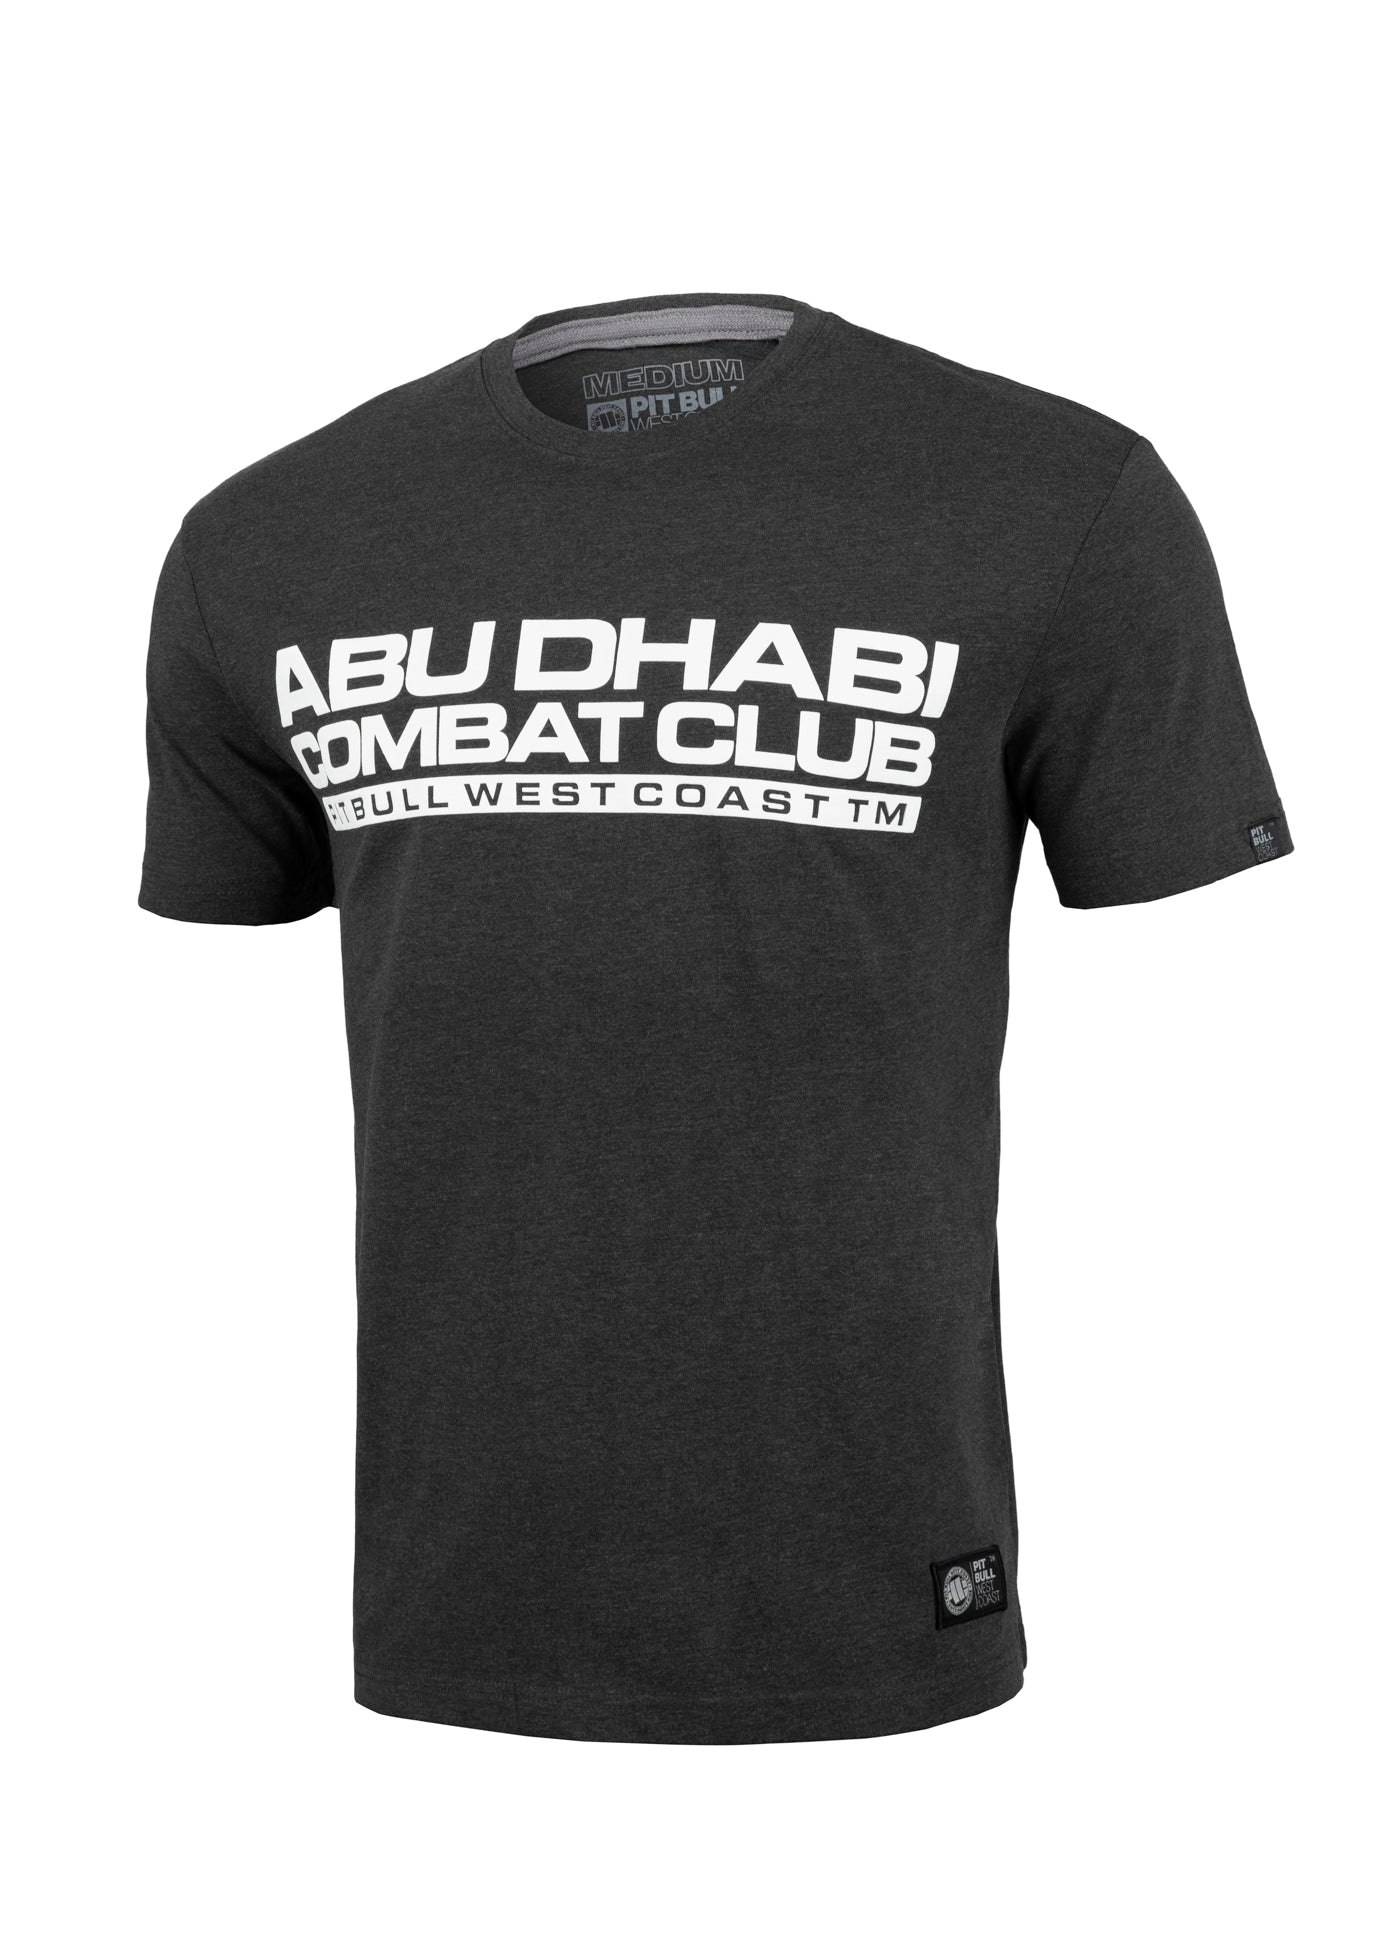 ADCC Abu Dhabi Combat Club T-shirt in charcoal mlg.